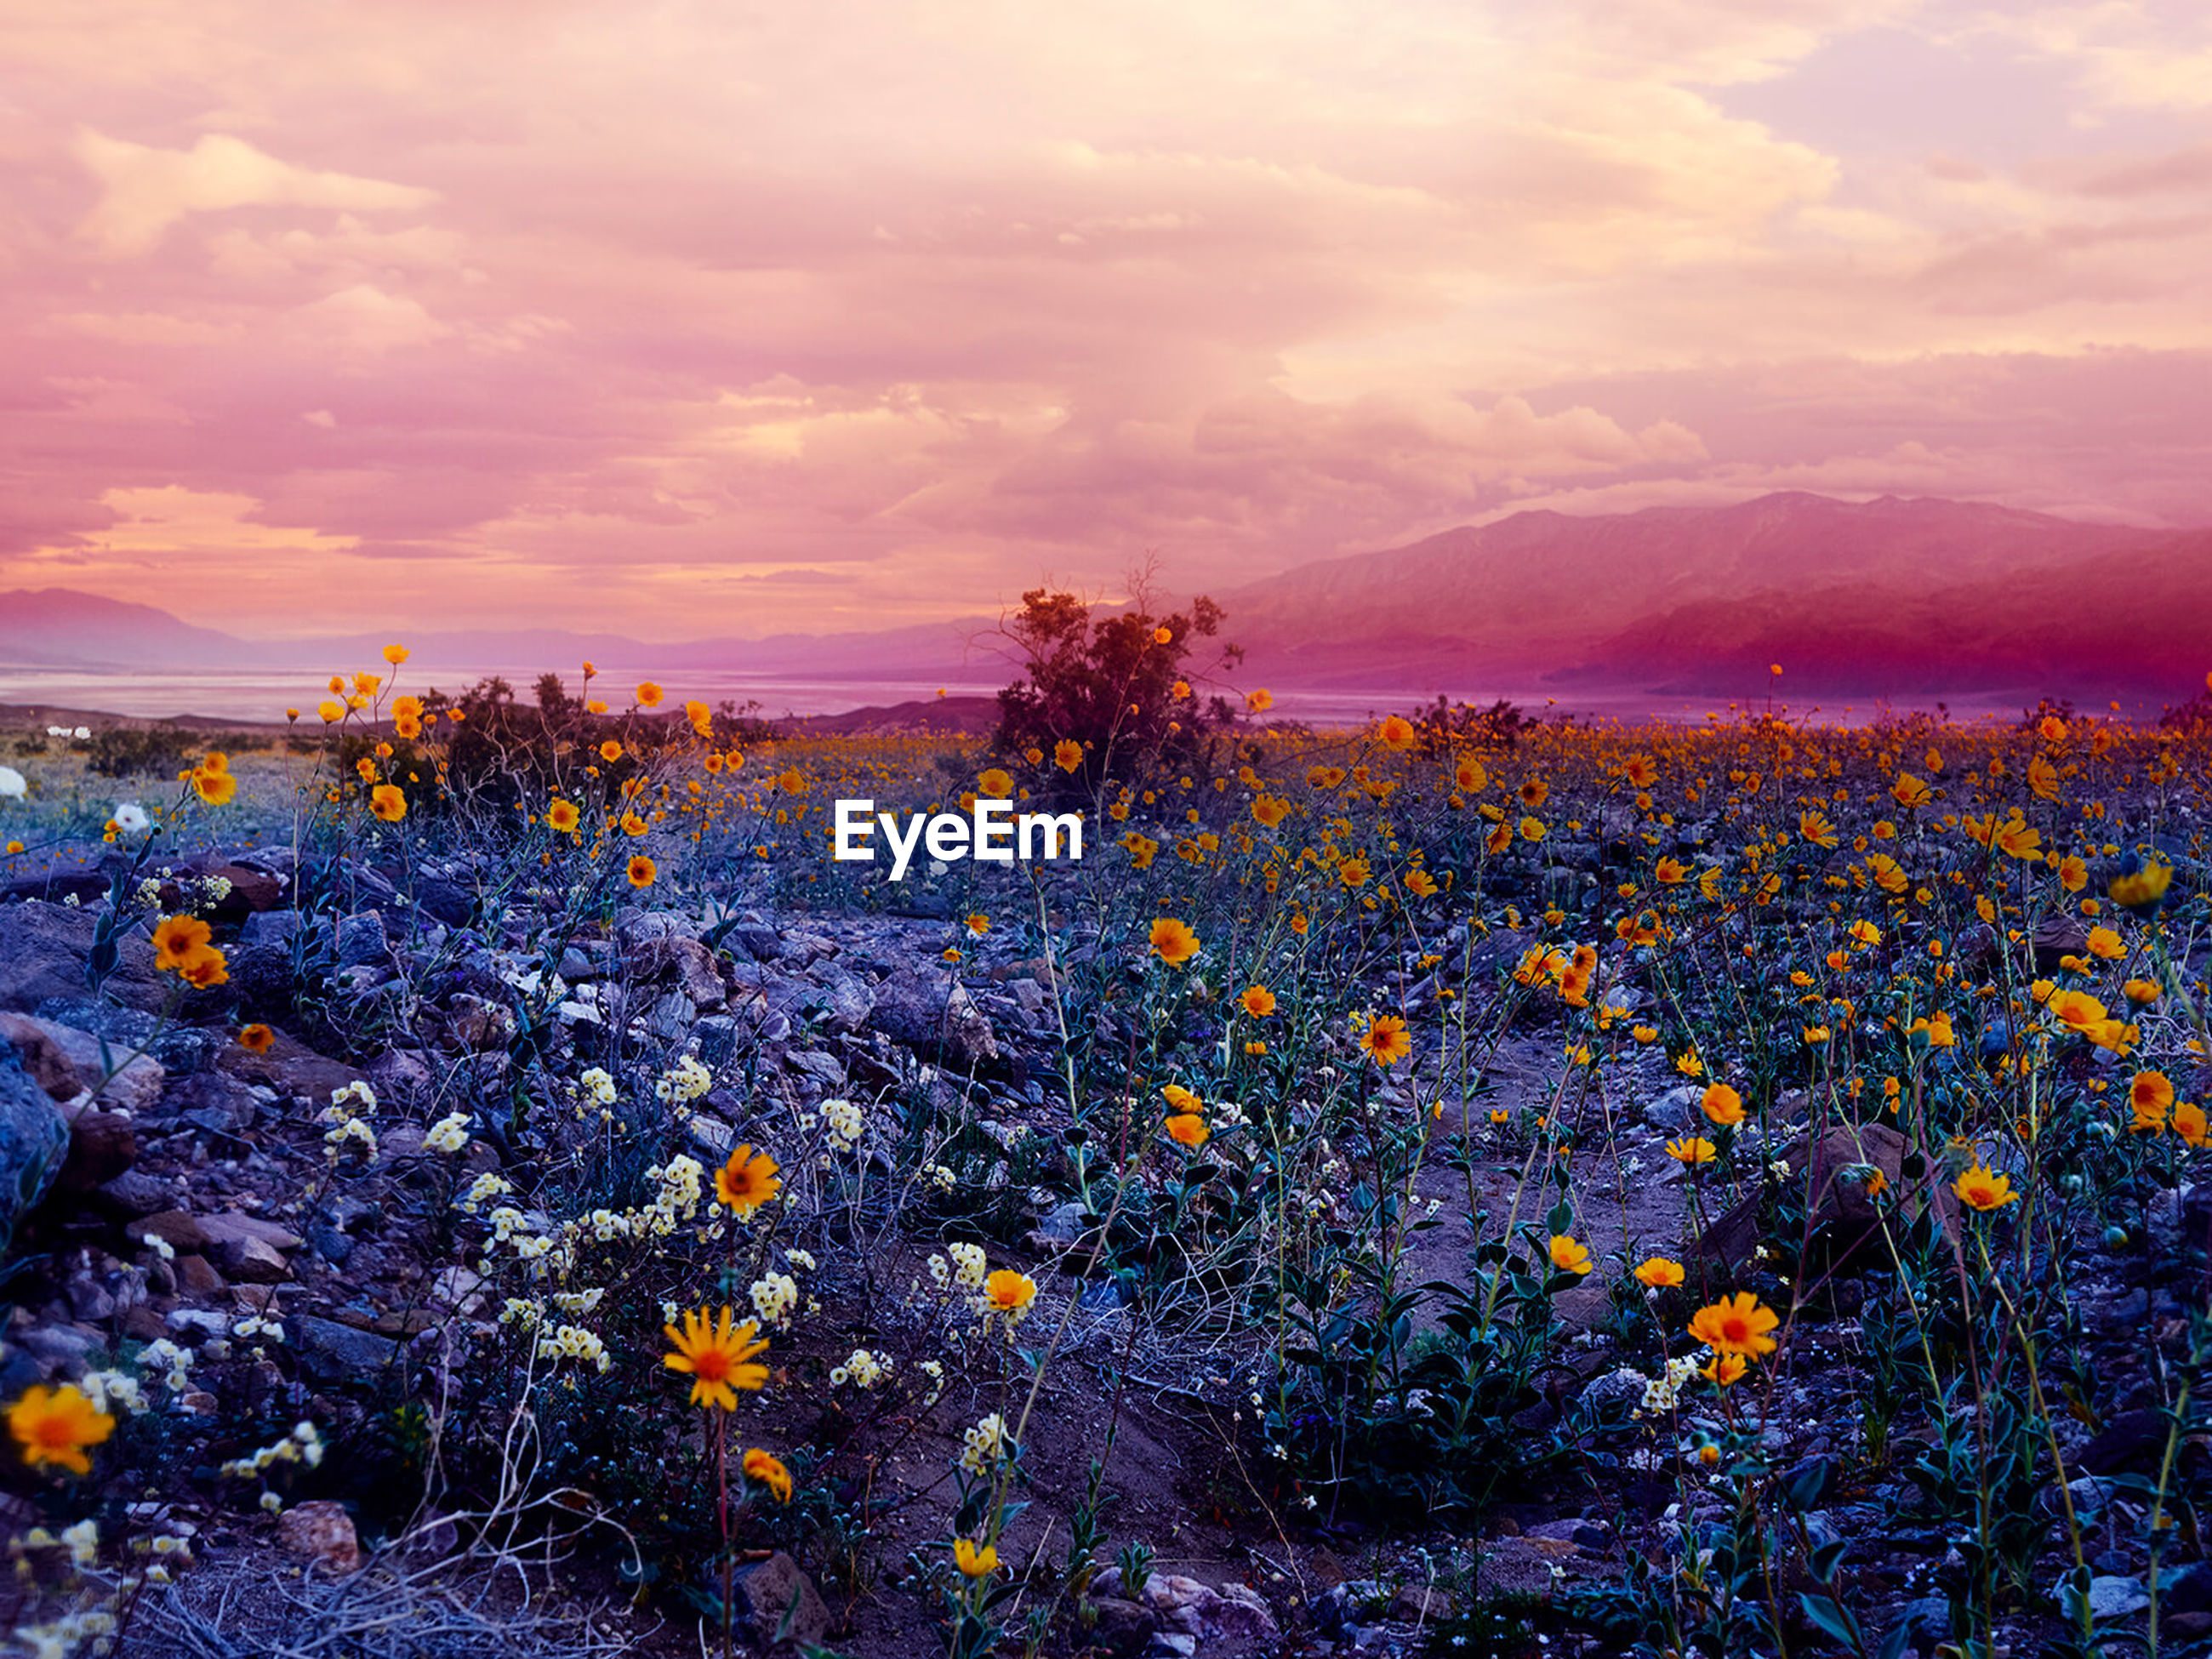 sky, beauty in nature, flowering plant, flower, cloud - sky, plant, growth, nature, tranquility, scenics - nature, vulnerability, freshness, land, fragility, tranquil scene, sunset, field, no people, environment, landscape, outdoors, flower head, purple, flowerbed